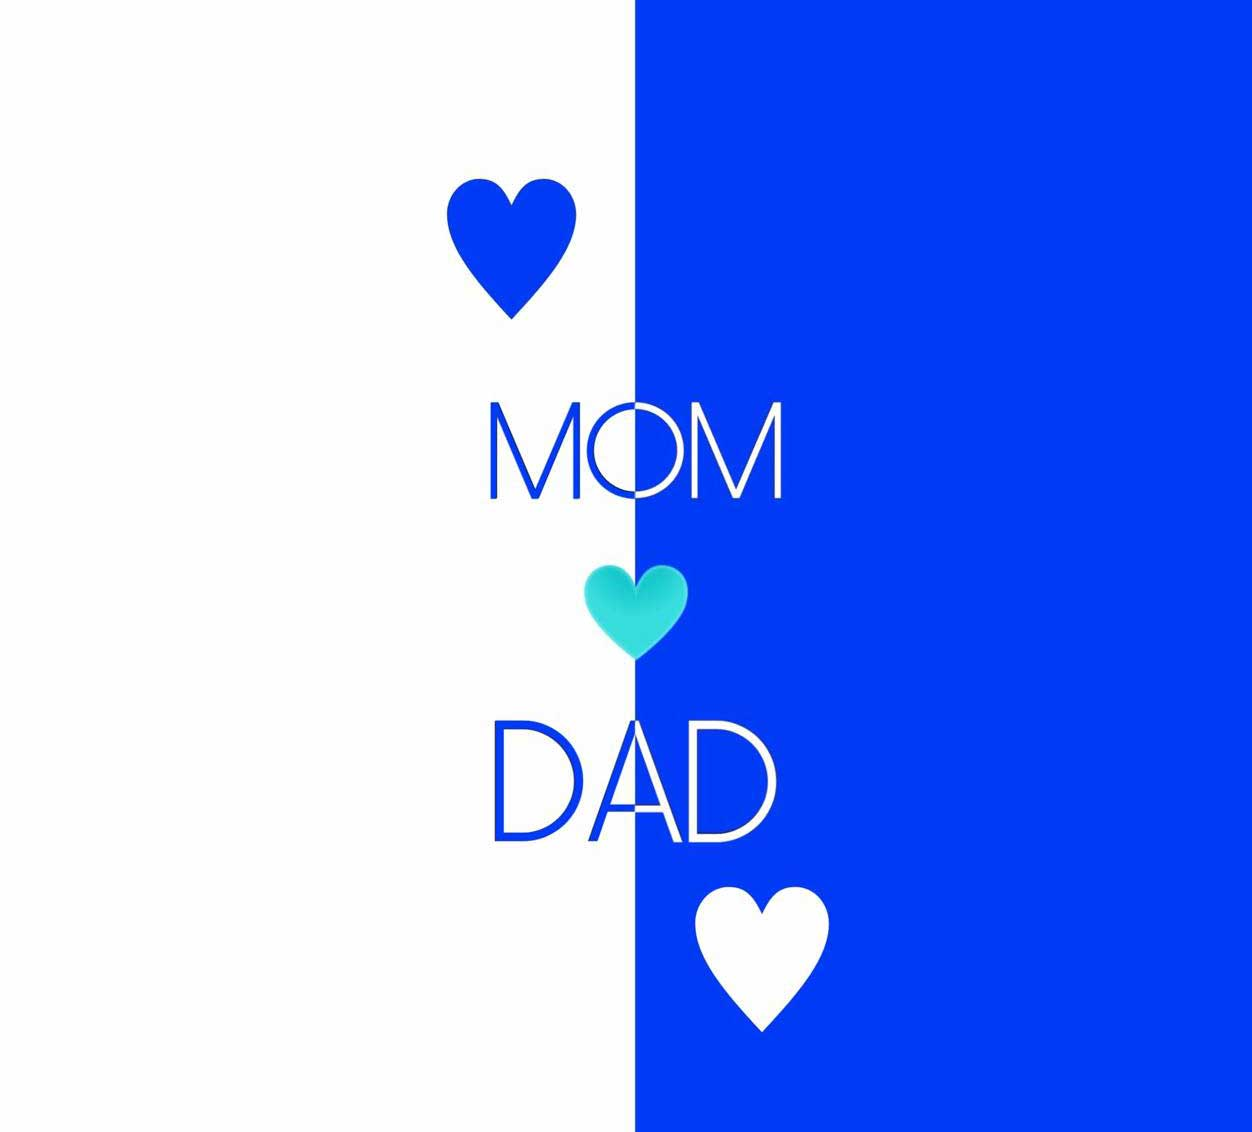 Mom Dad Whatsapp DP Pictures Pics